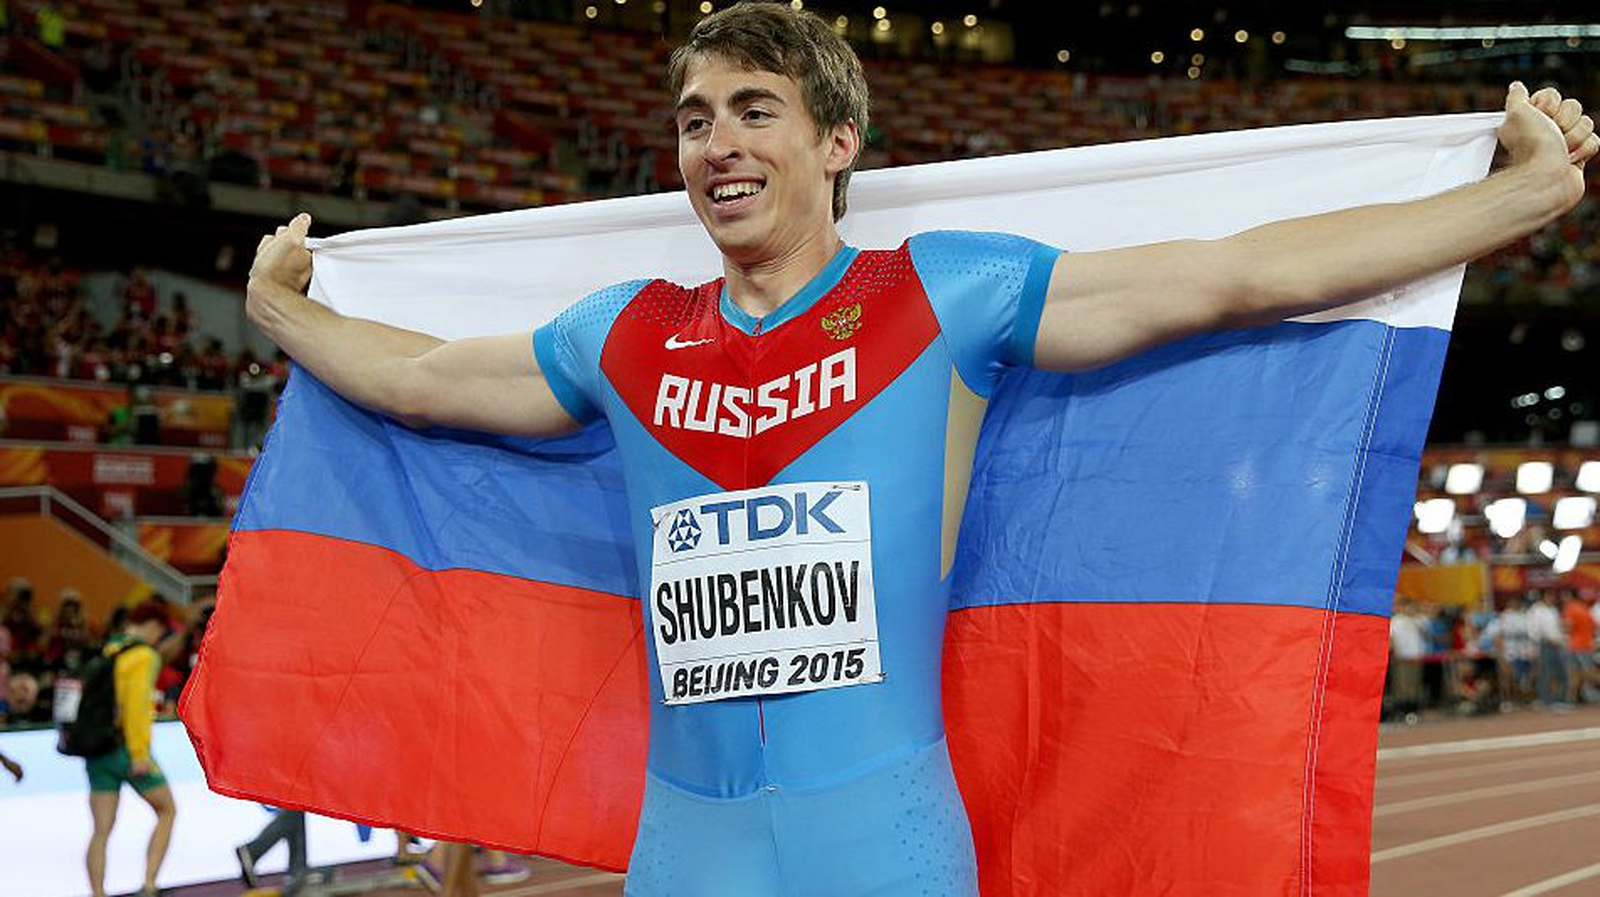 Russian authorities will support athletes who still want to go to the Olympics 12/12/2017 52